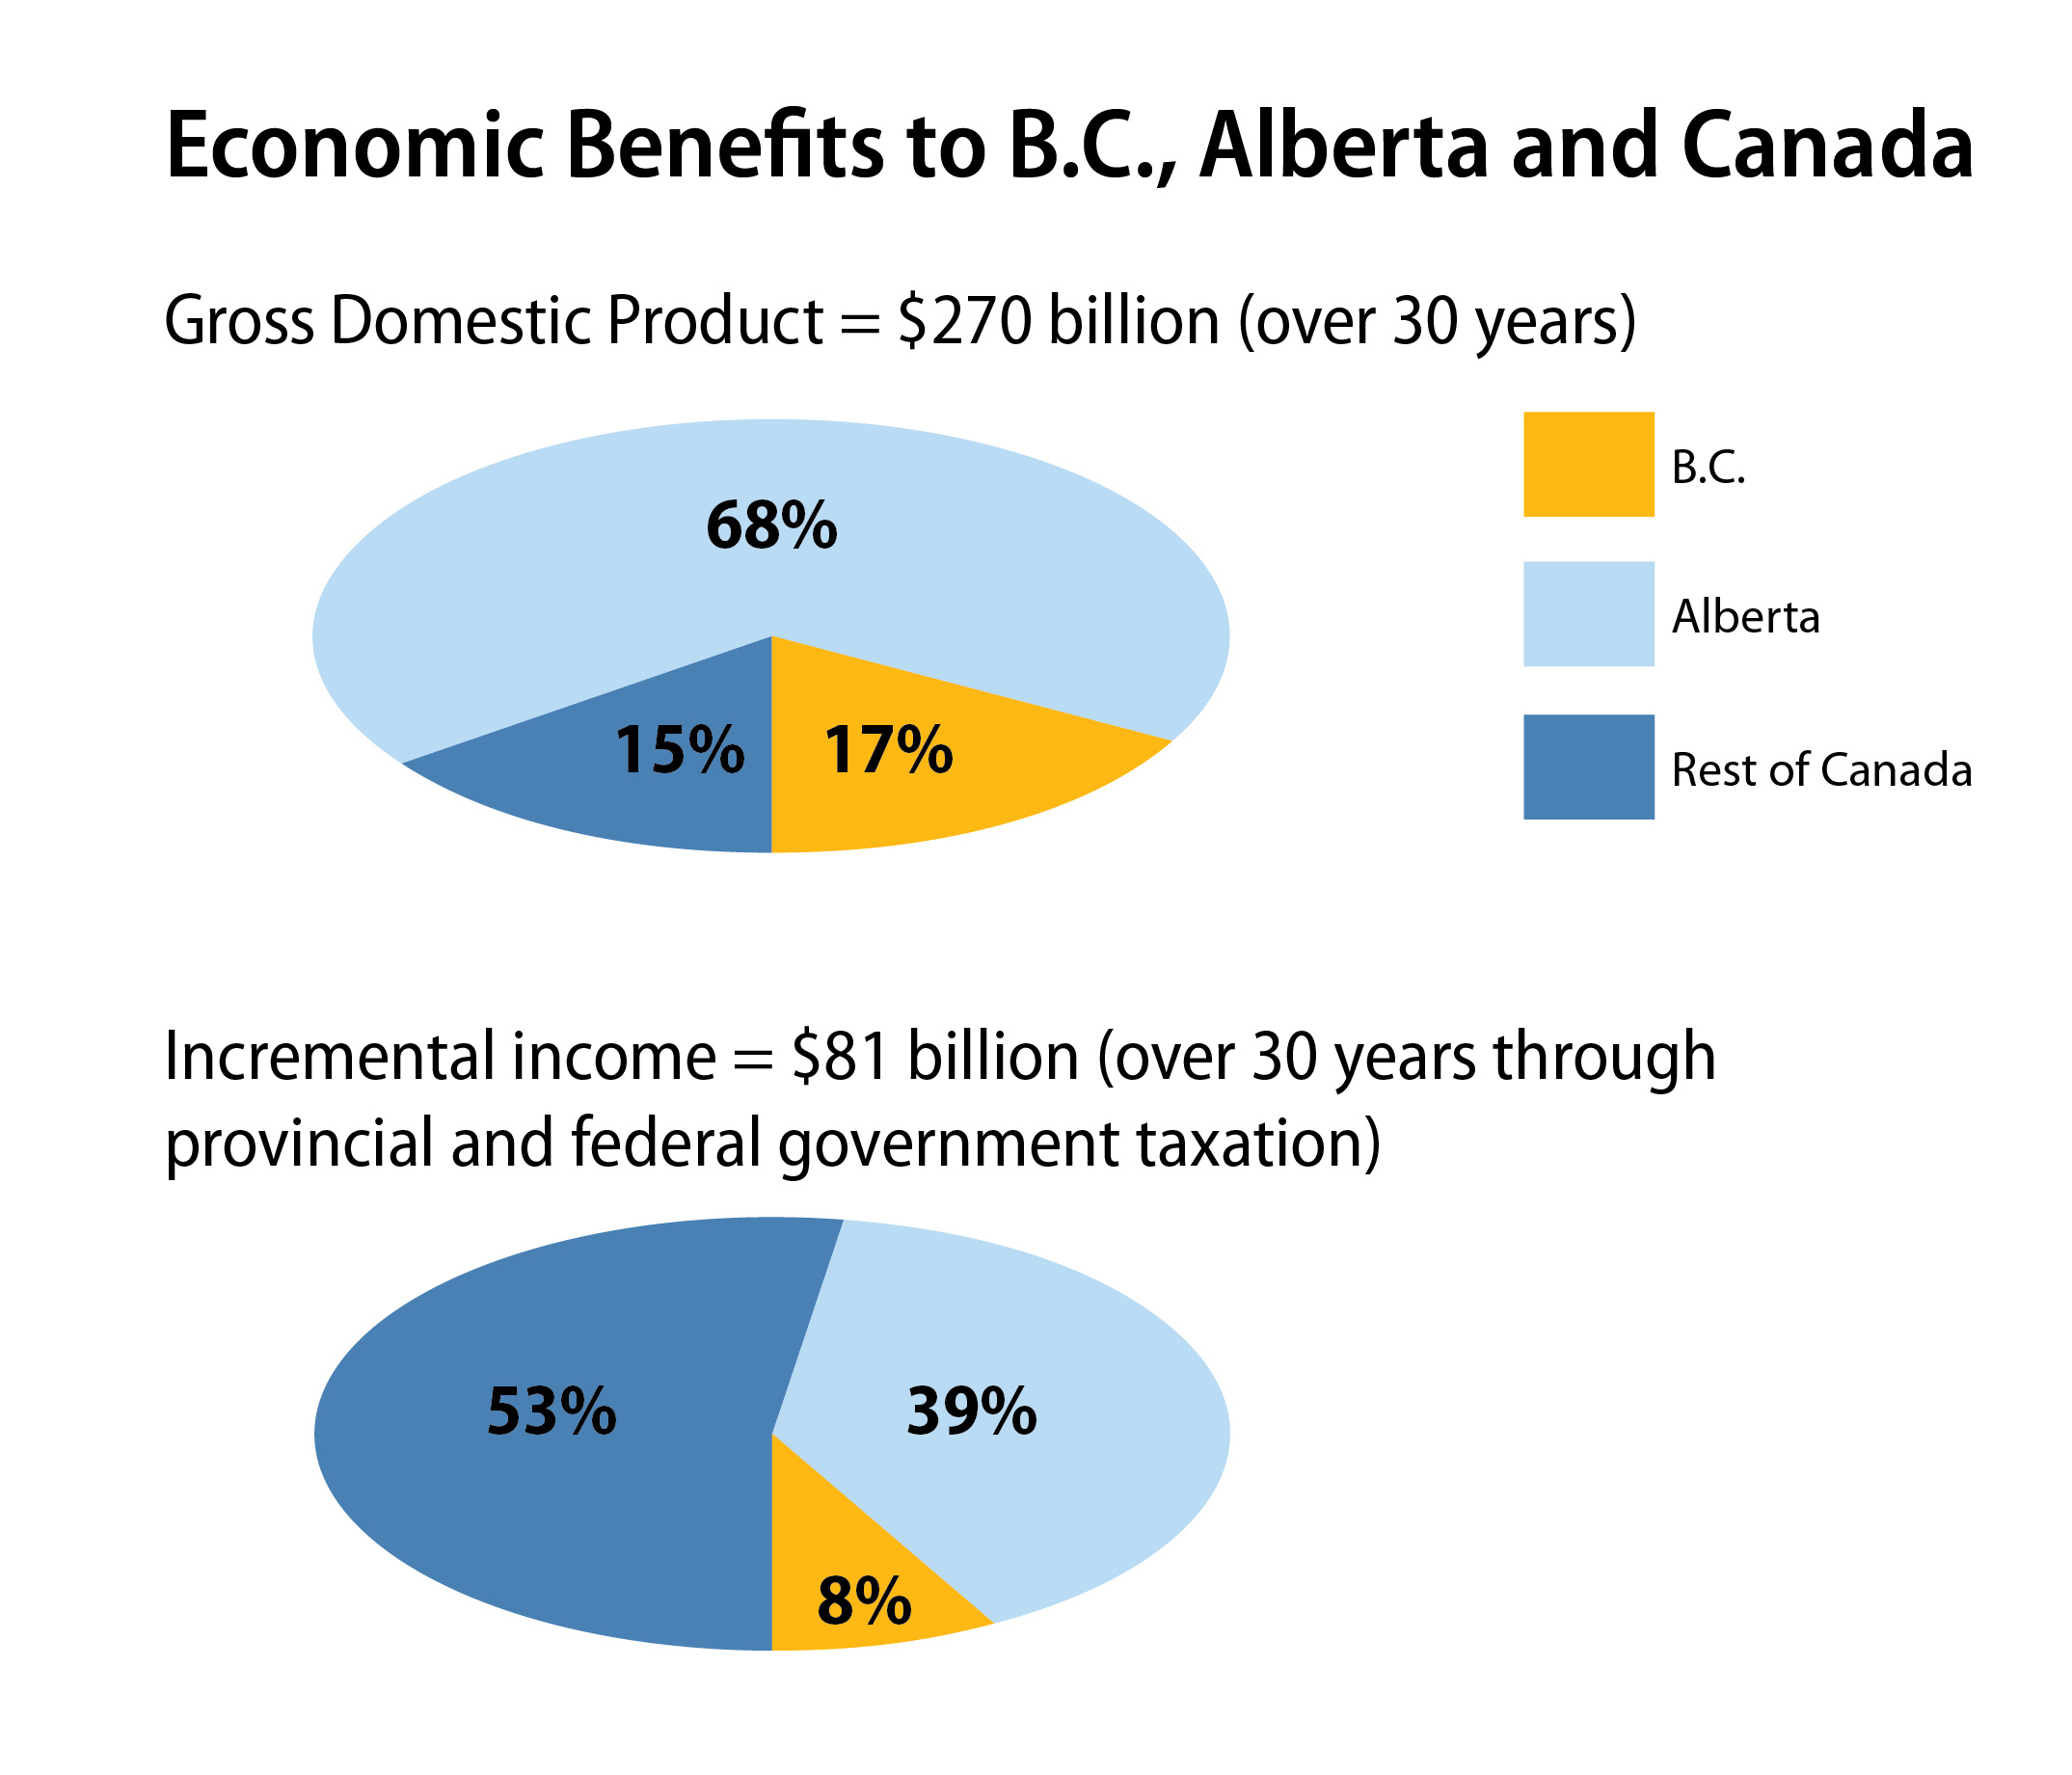 Economic Benefits to B.C.